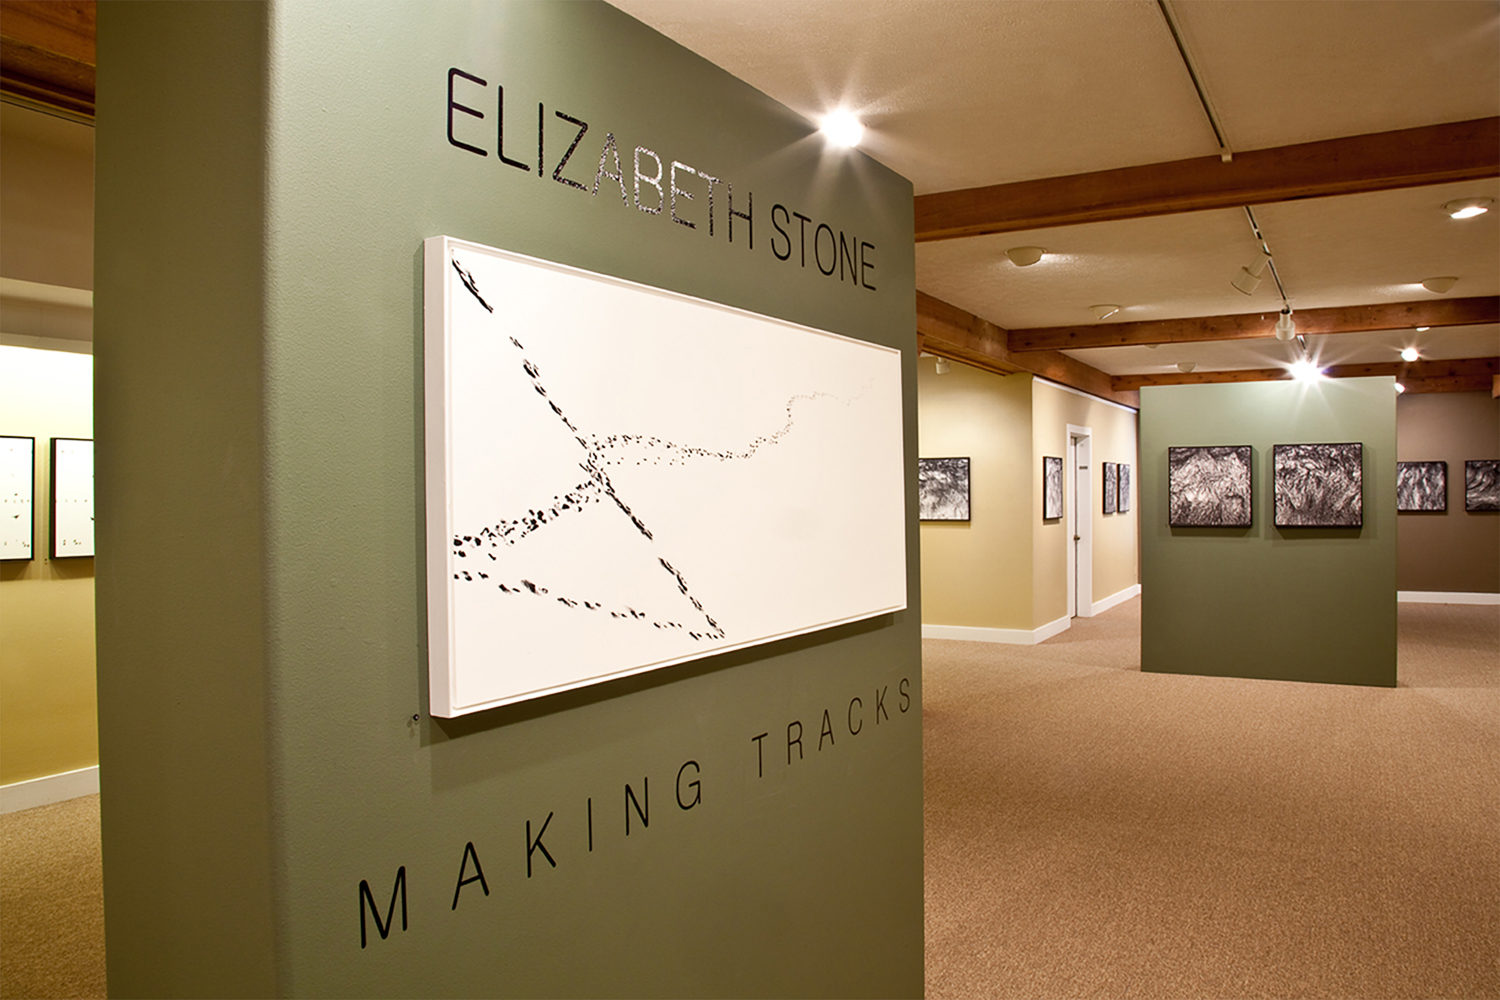 Making Tracks Exhibition